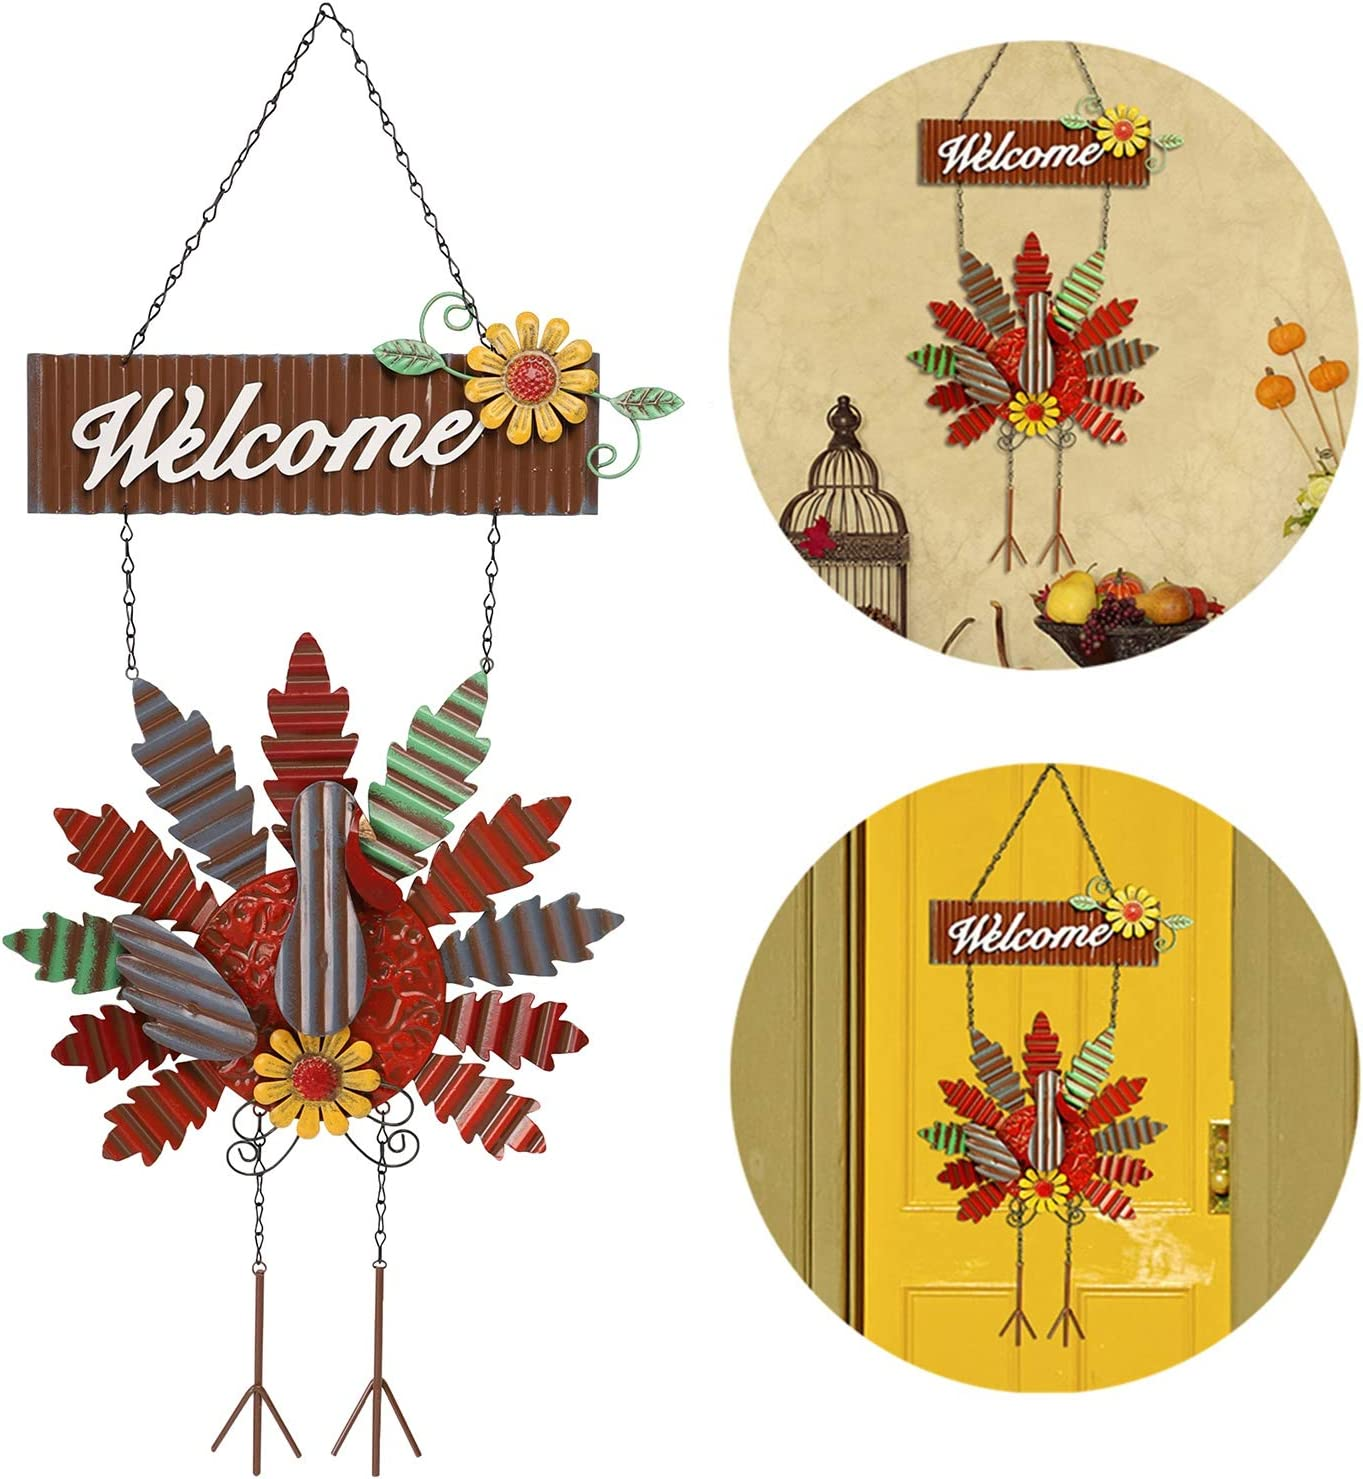 yosager Thanksgiving Metal Turkey Hanging Door Sign Wall Decor Welcome Banner, Welcome Front Door Hanger Ornament Festive Whimsical for Halloween Christmas Thanksgiving Decoration